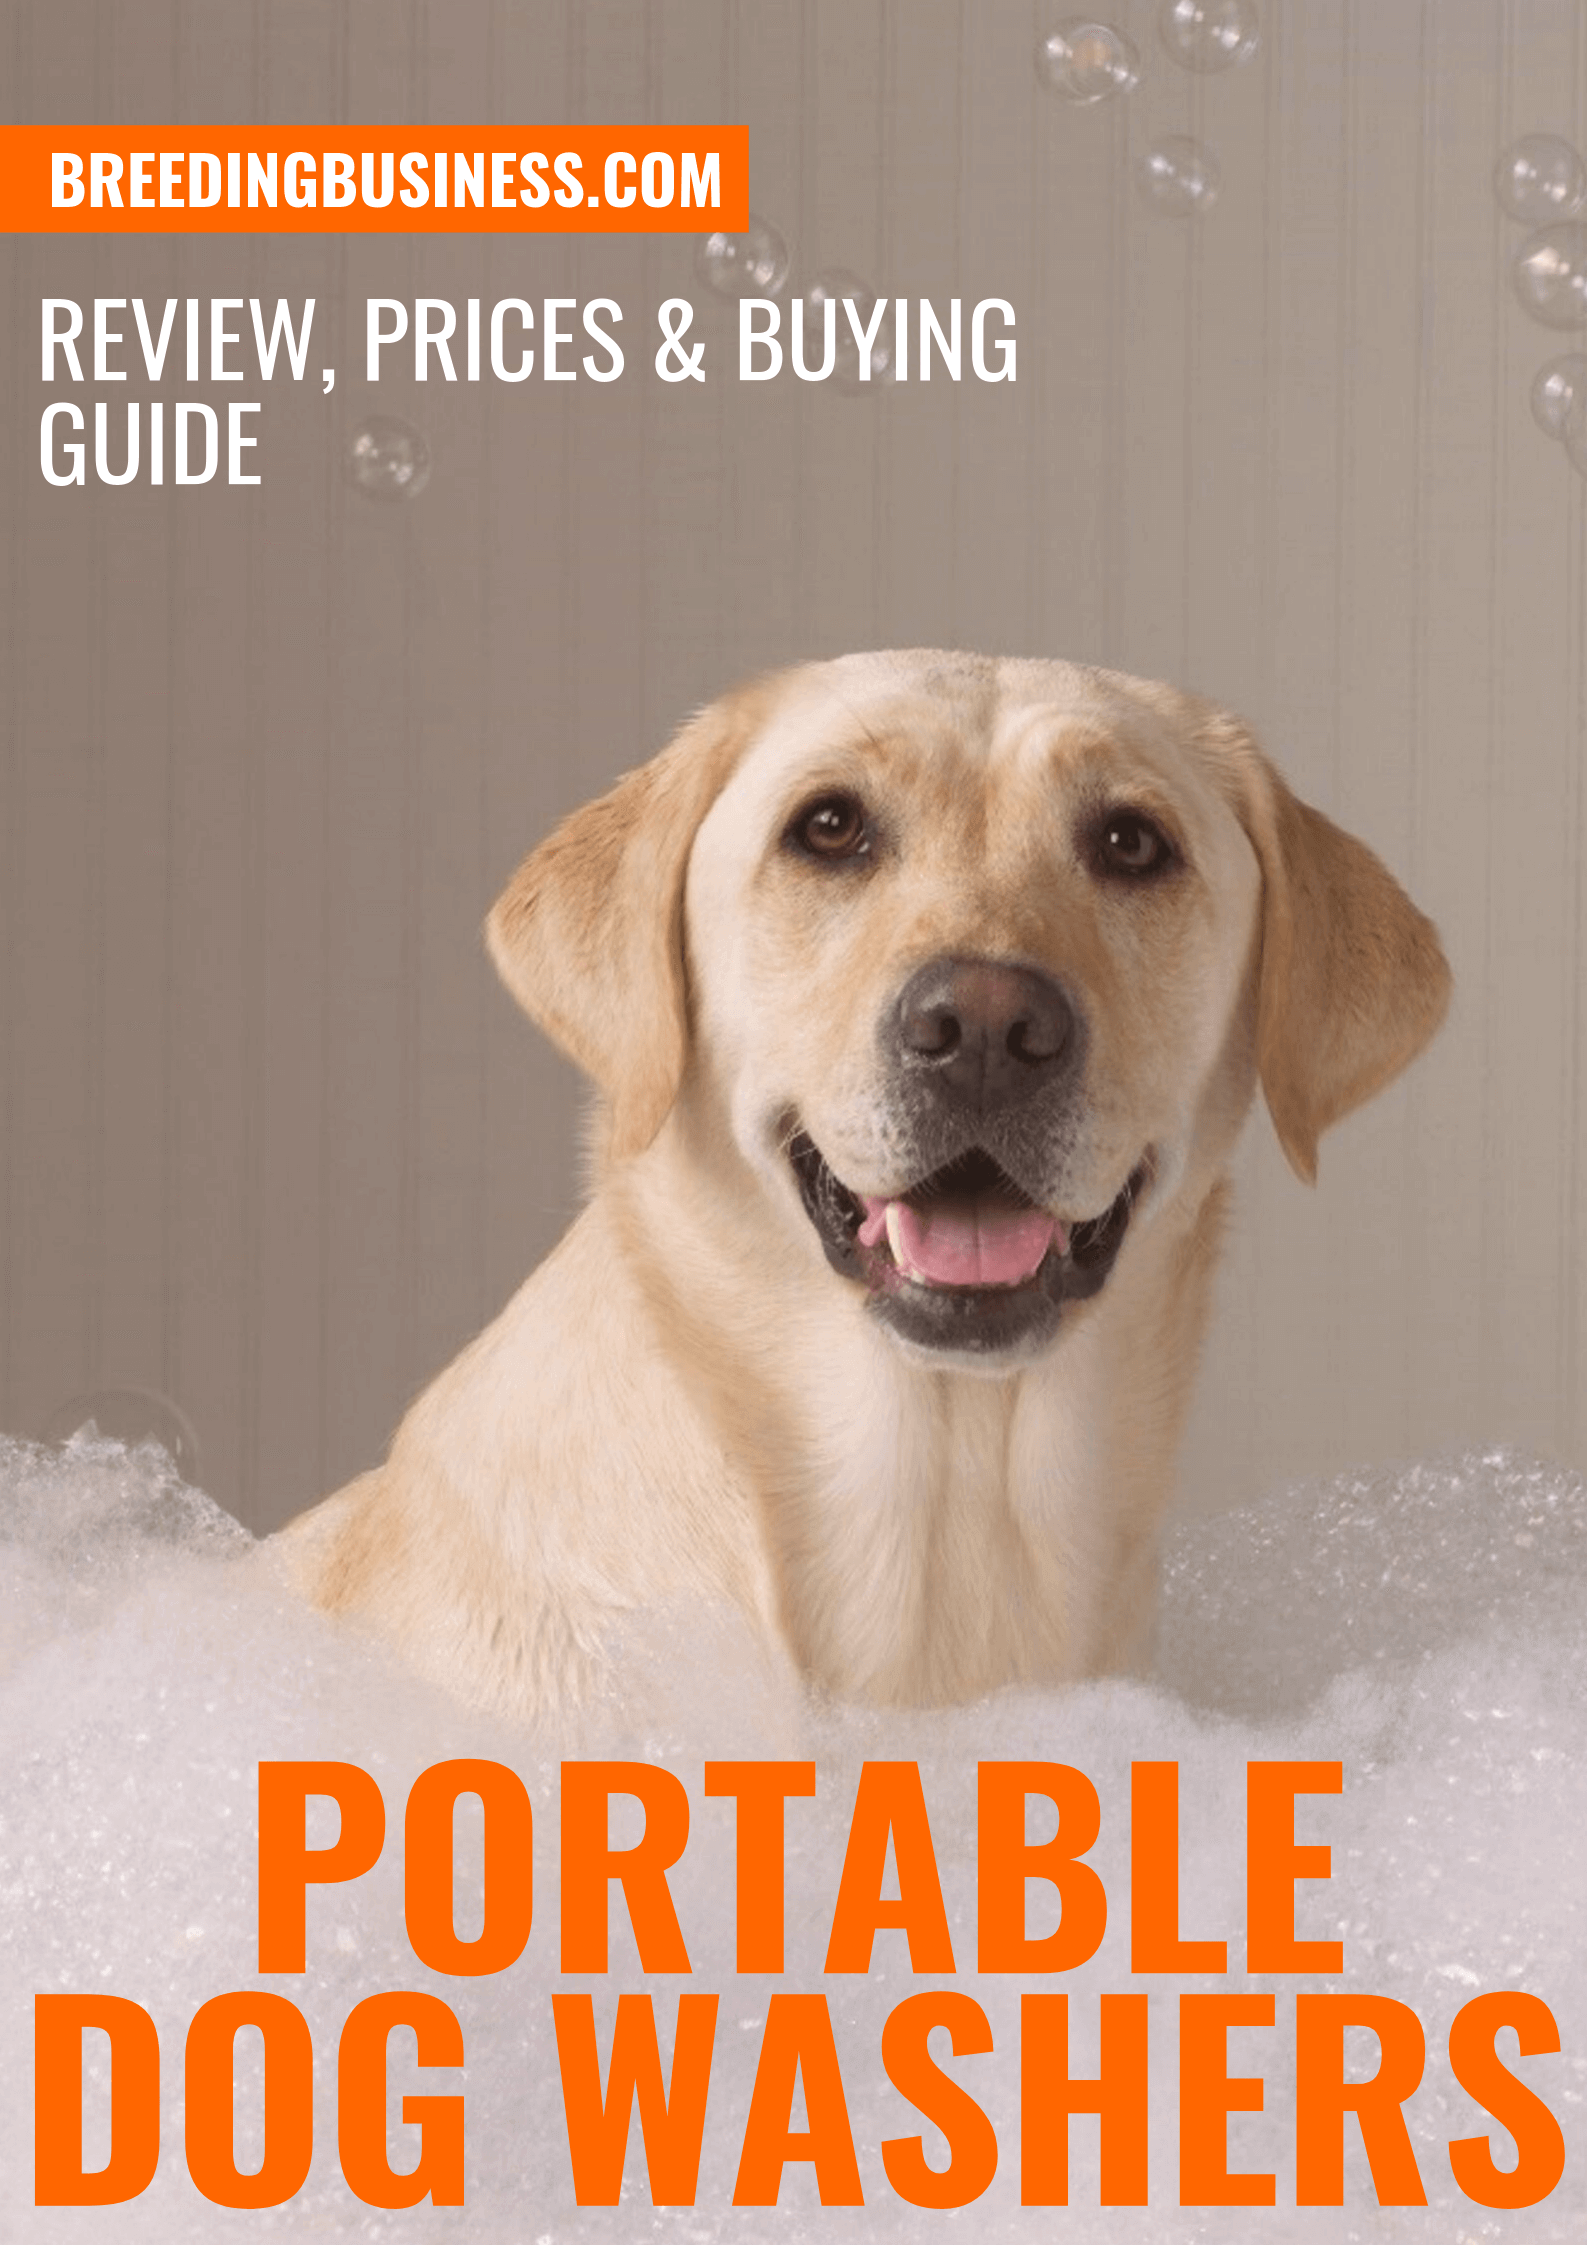 Top 5 Best Portable Dog Washers — Reviews, Prices & Systems